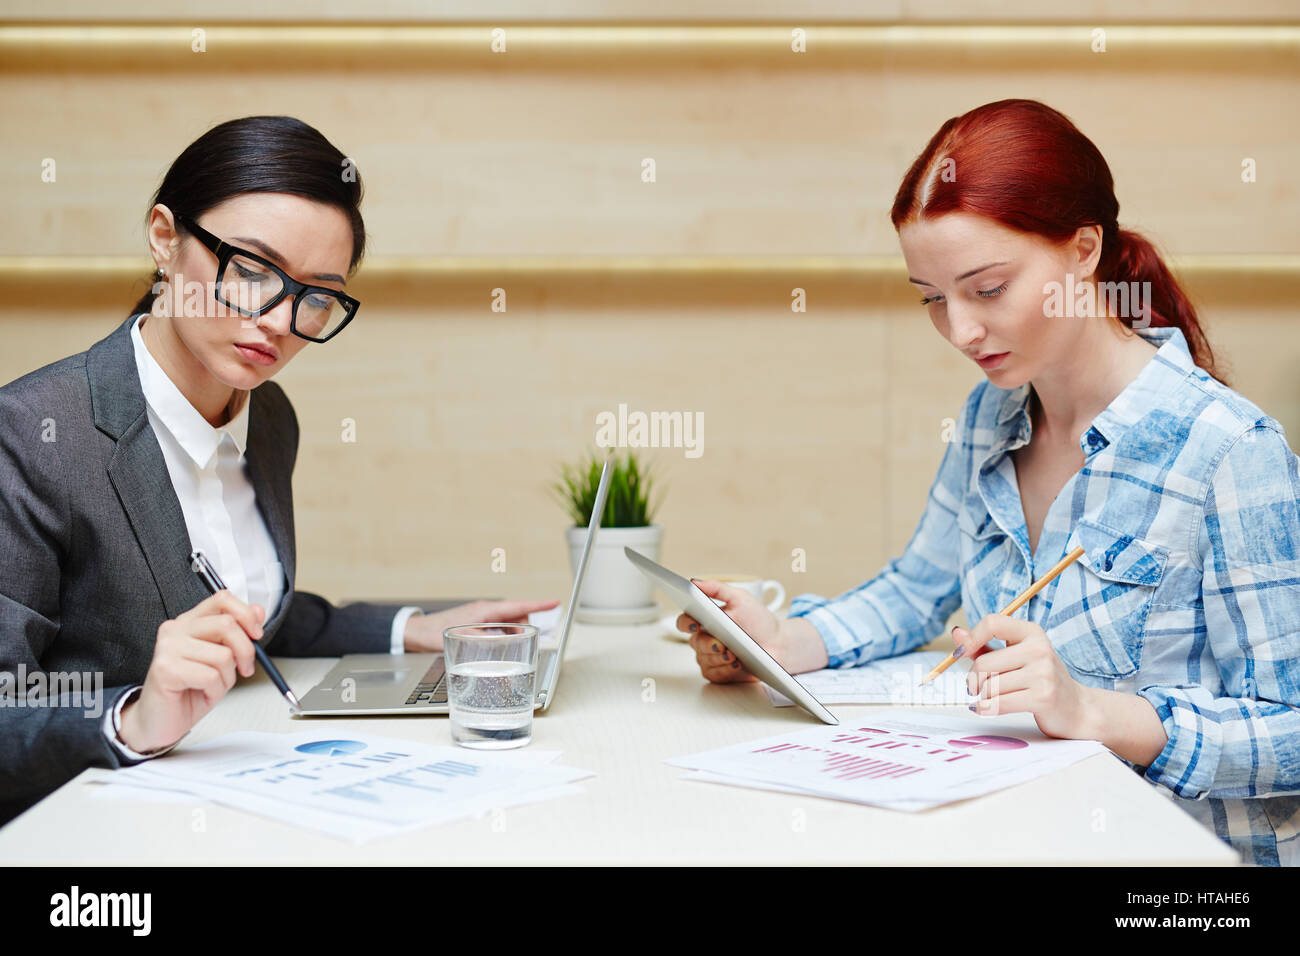 Concentrated pretty businesswoman in eyeglasses and formalwear examining documents and making notes while her red - Stock Image